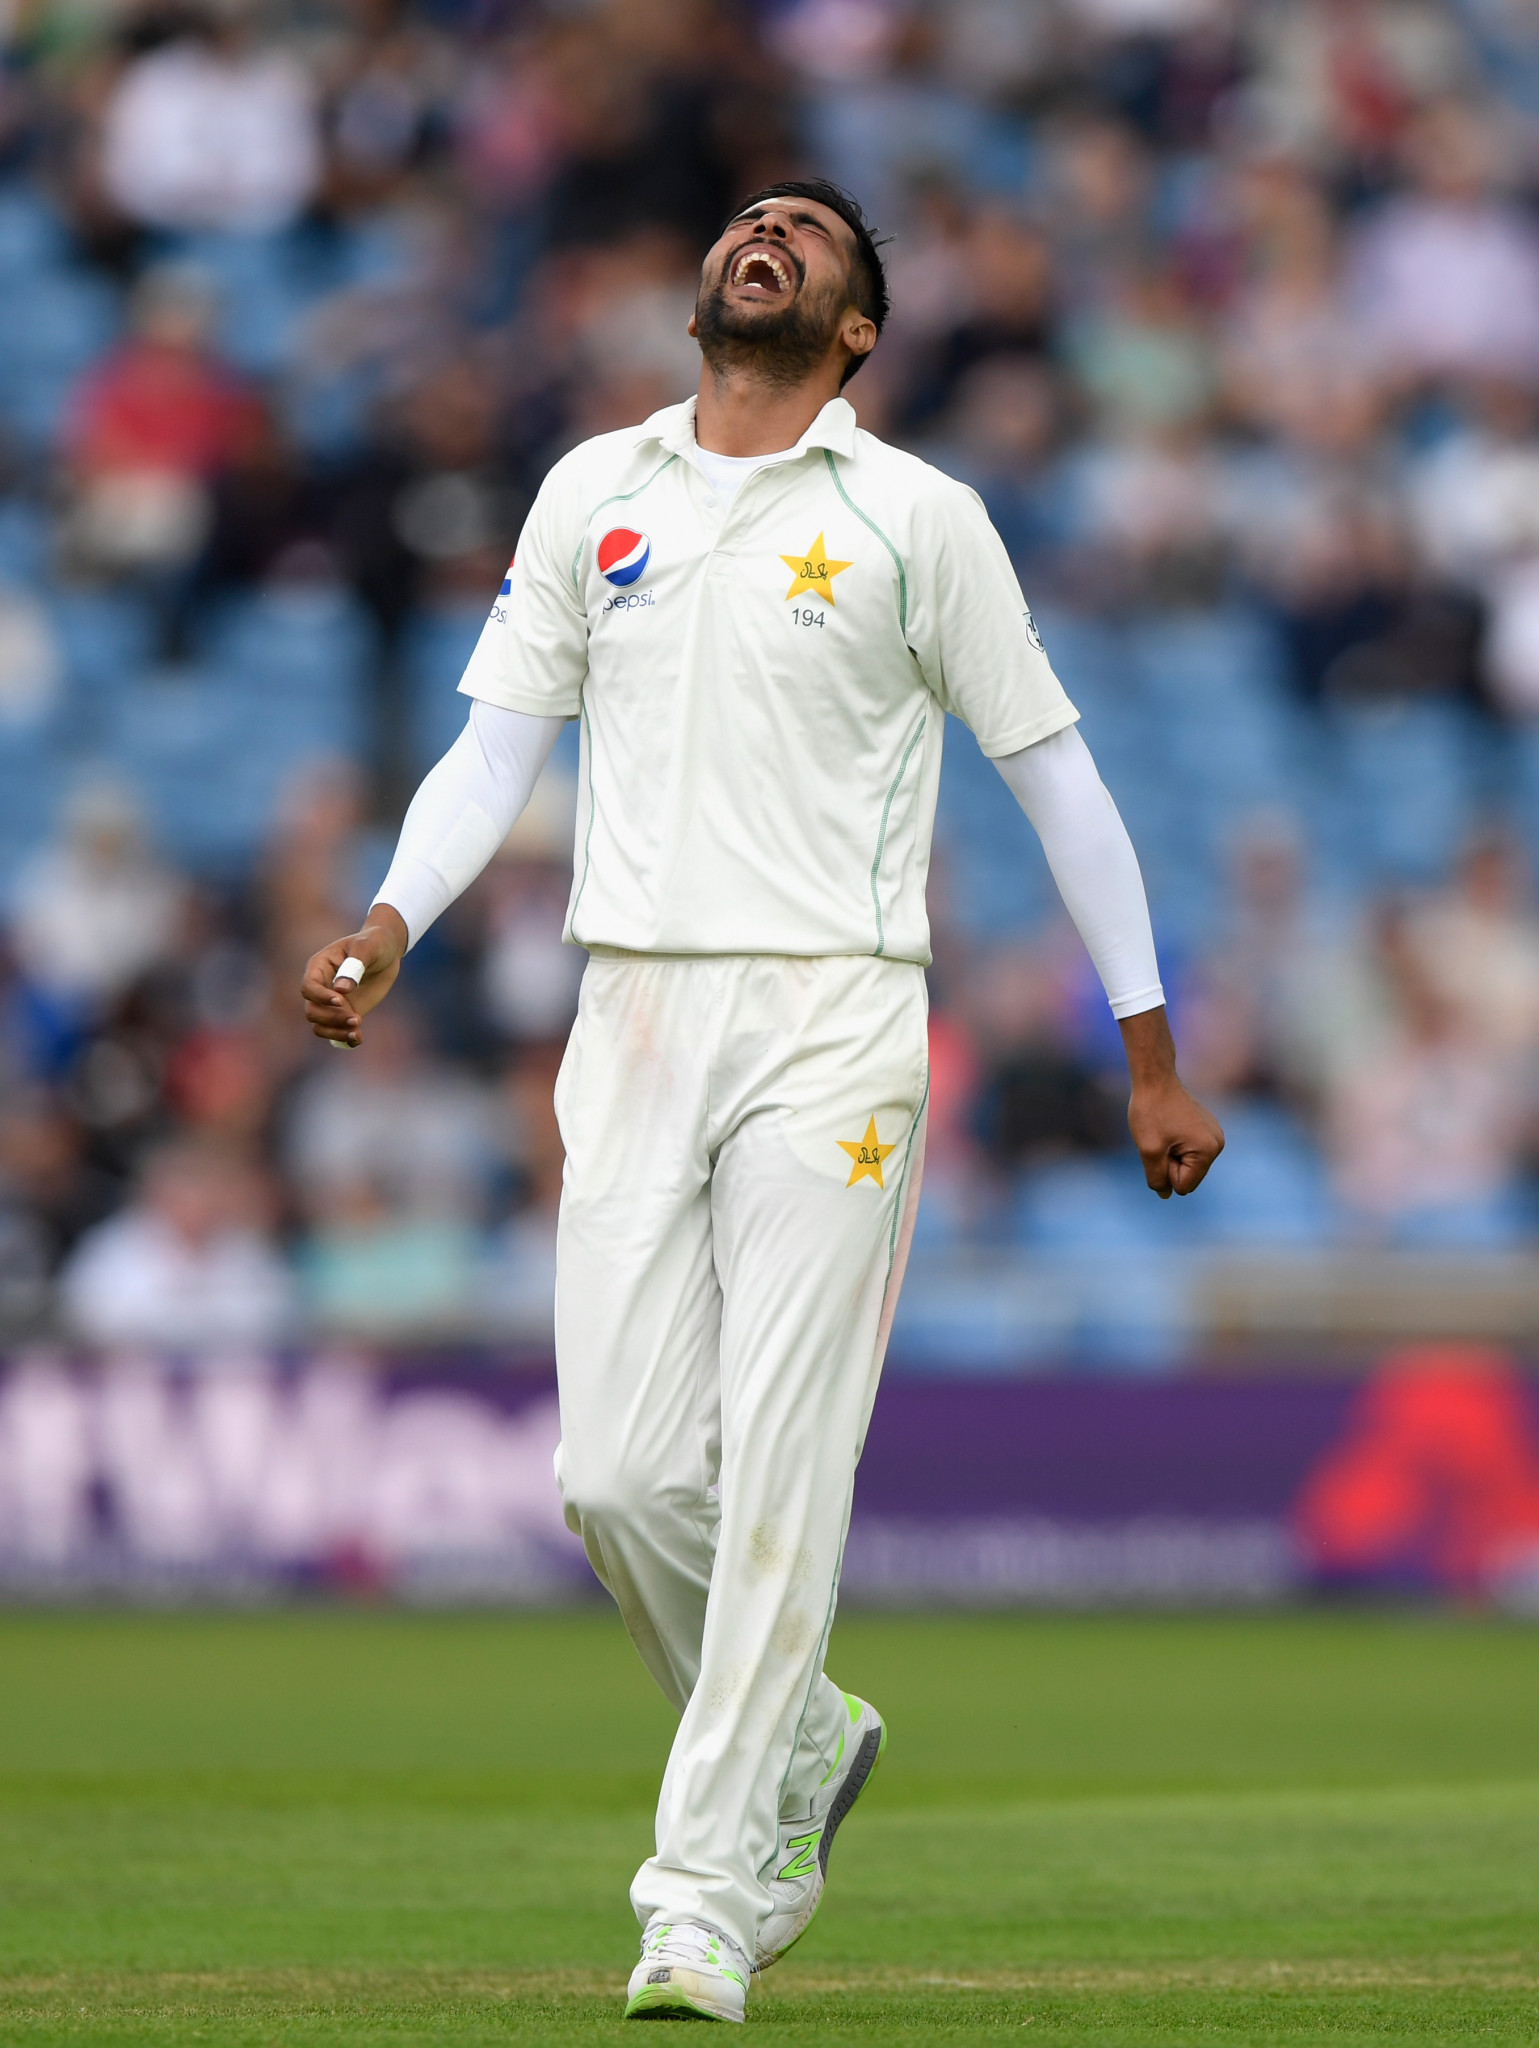 Pakistan's Mohammad Amir pleaded guilty to match fixing during a test at Lord's in 2011 and was given a six month jail term under UK law ©Getty Images